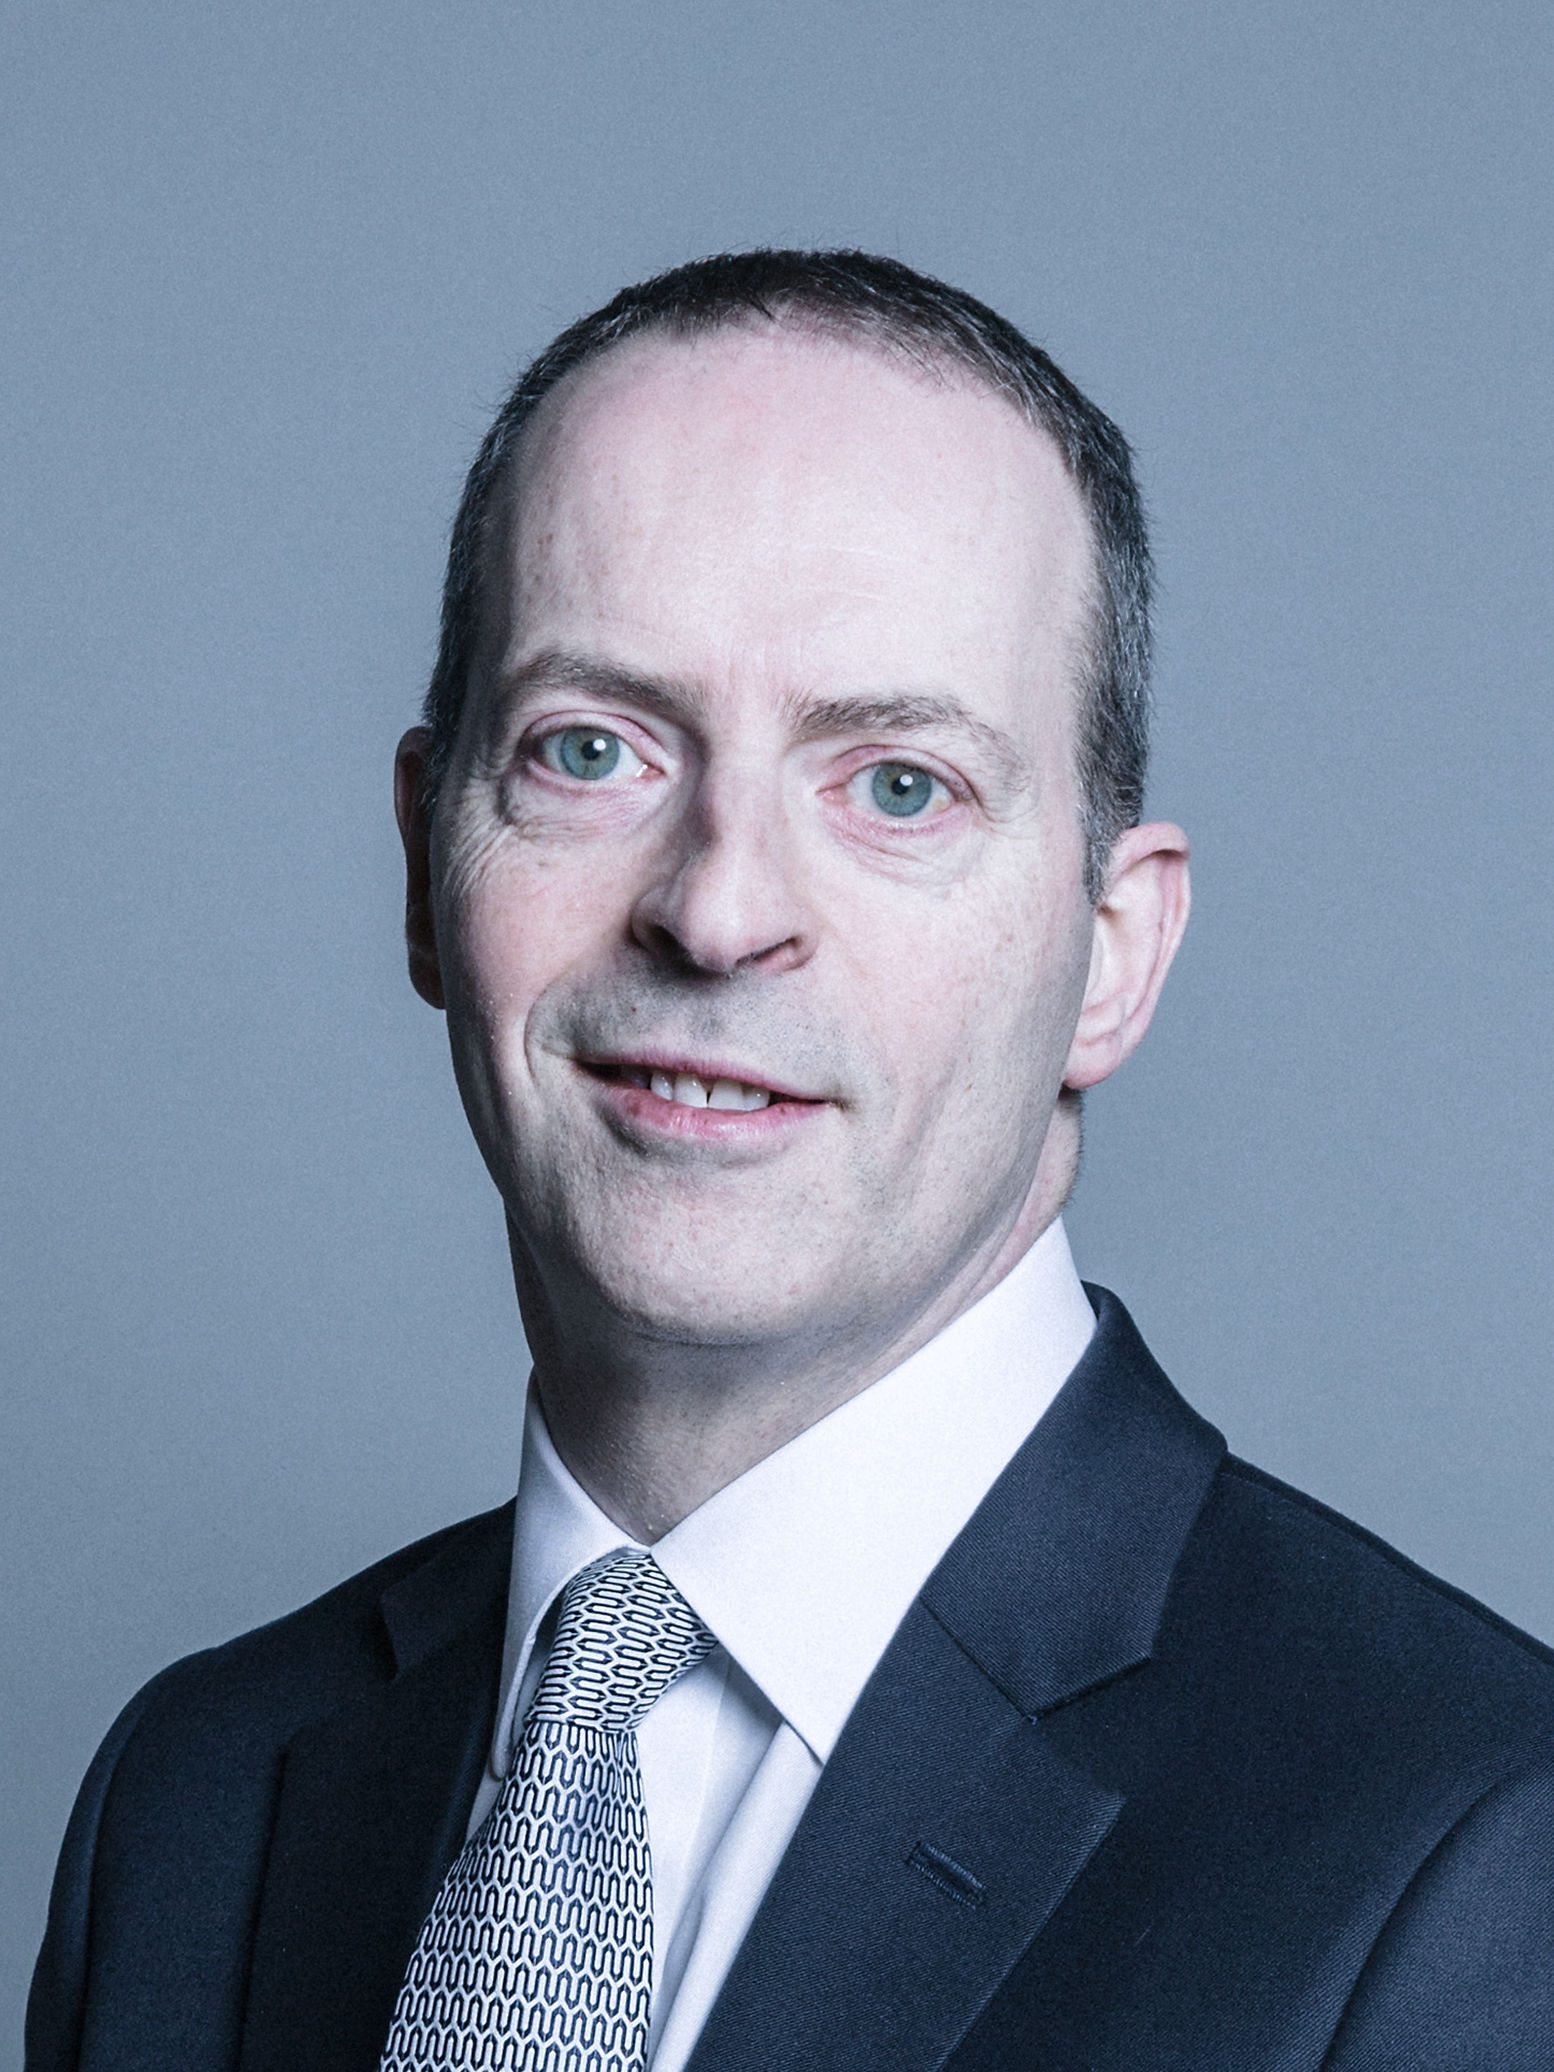 National Grid announces Ian Livingston to its Board as upcoming Non-Executive Director